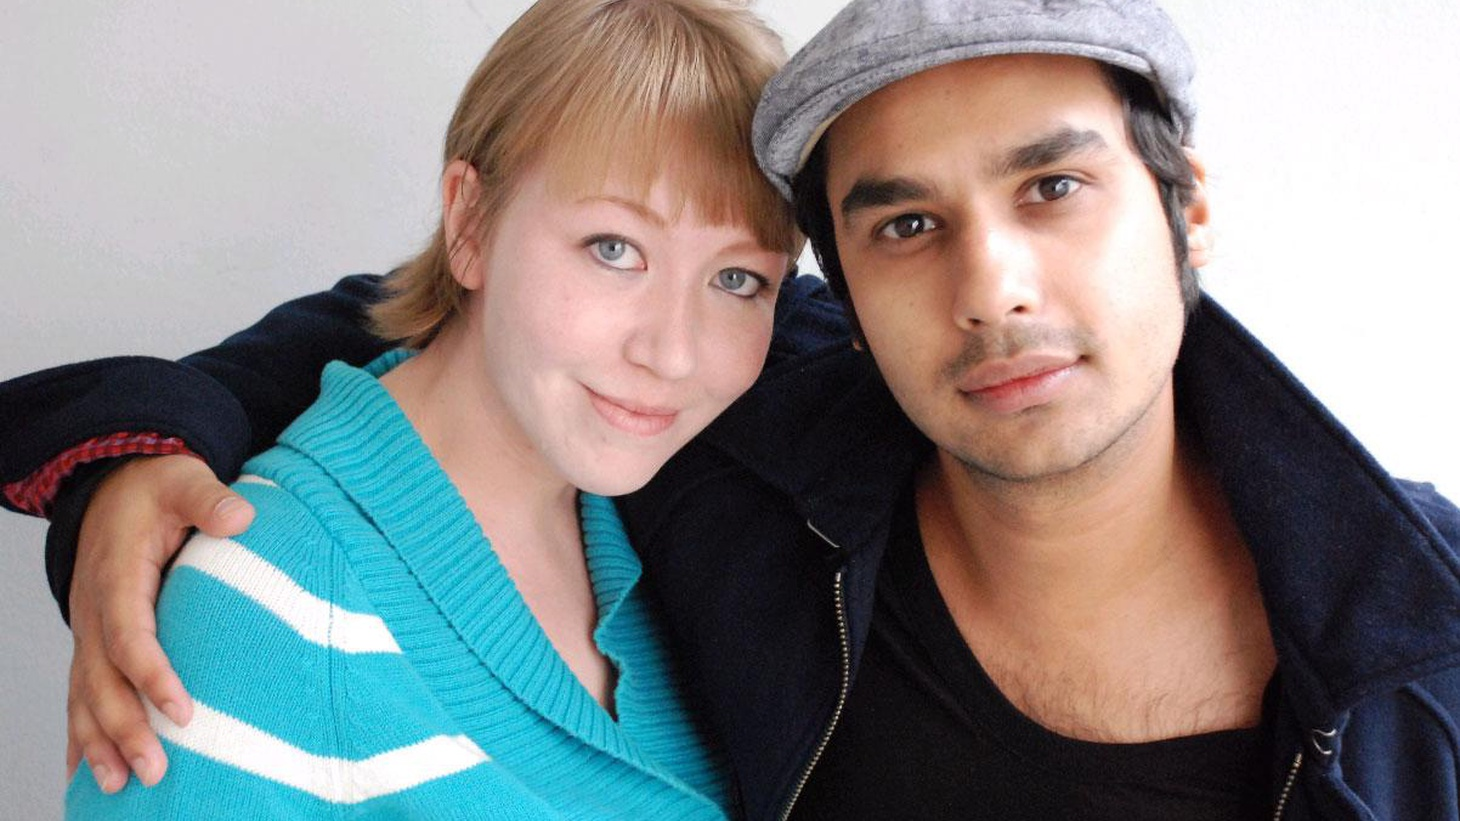 Kunal Nayyar leads with his heart in his Guest DJ set, a rather interesting twist since his character, Raj, on the comedy The Big Bang Theory can't even talk to women. Nayyar loves voices that tell stories – from Irish folksingers to Thom Yorke – and shares some of the hip hop artists that defined his experiences growing up in New Delhi. The Big Bang Theory airs Thursday nights on CBS.   For More:  http://www.cbs.com/primetime/big_bang_theory